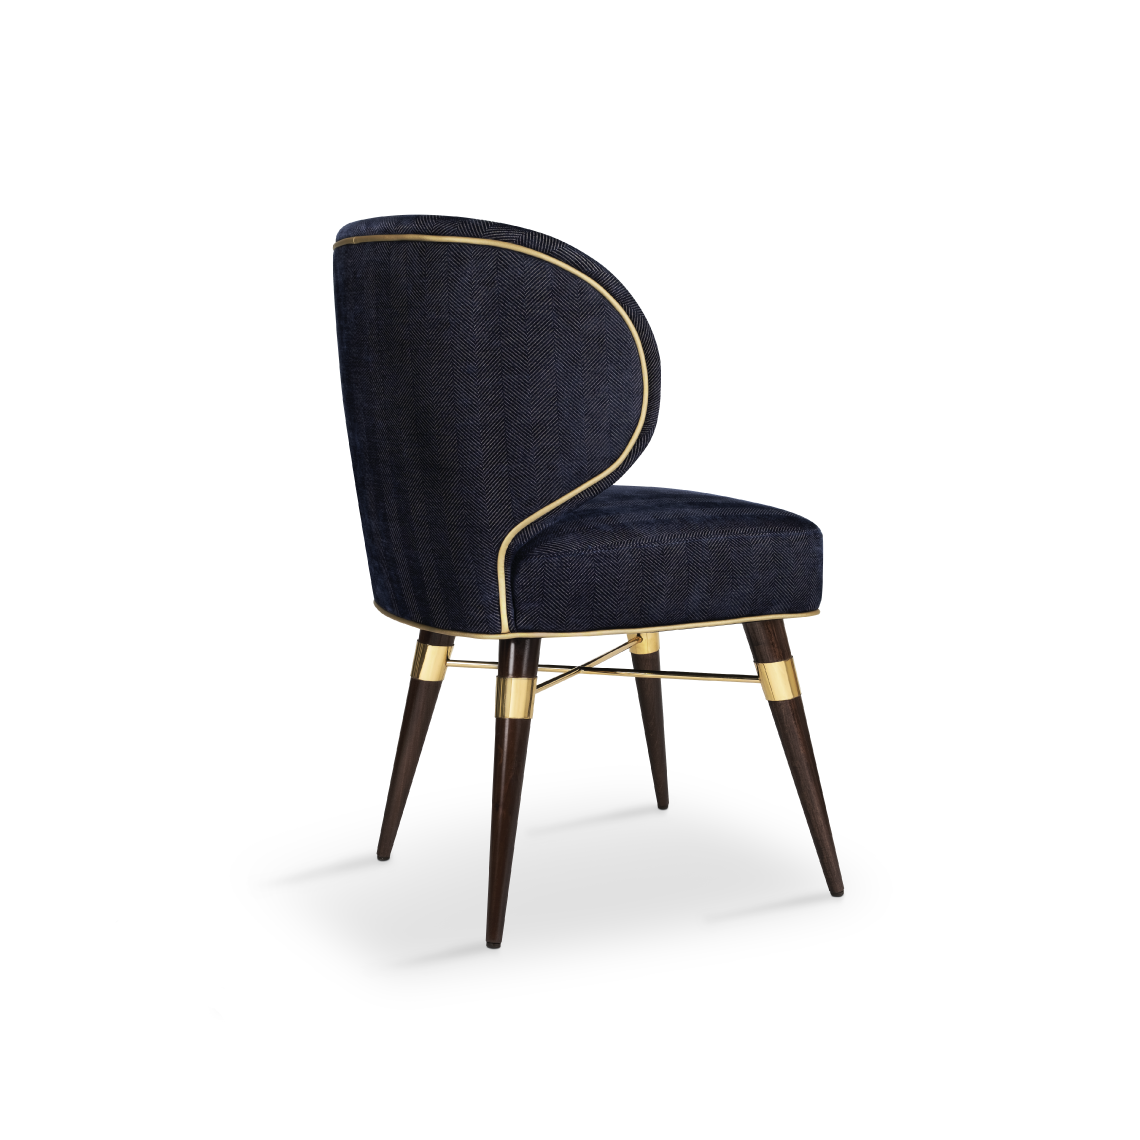 Louis Dining Chair designed by Ottiu